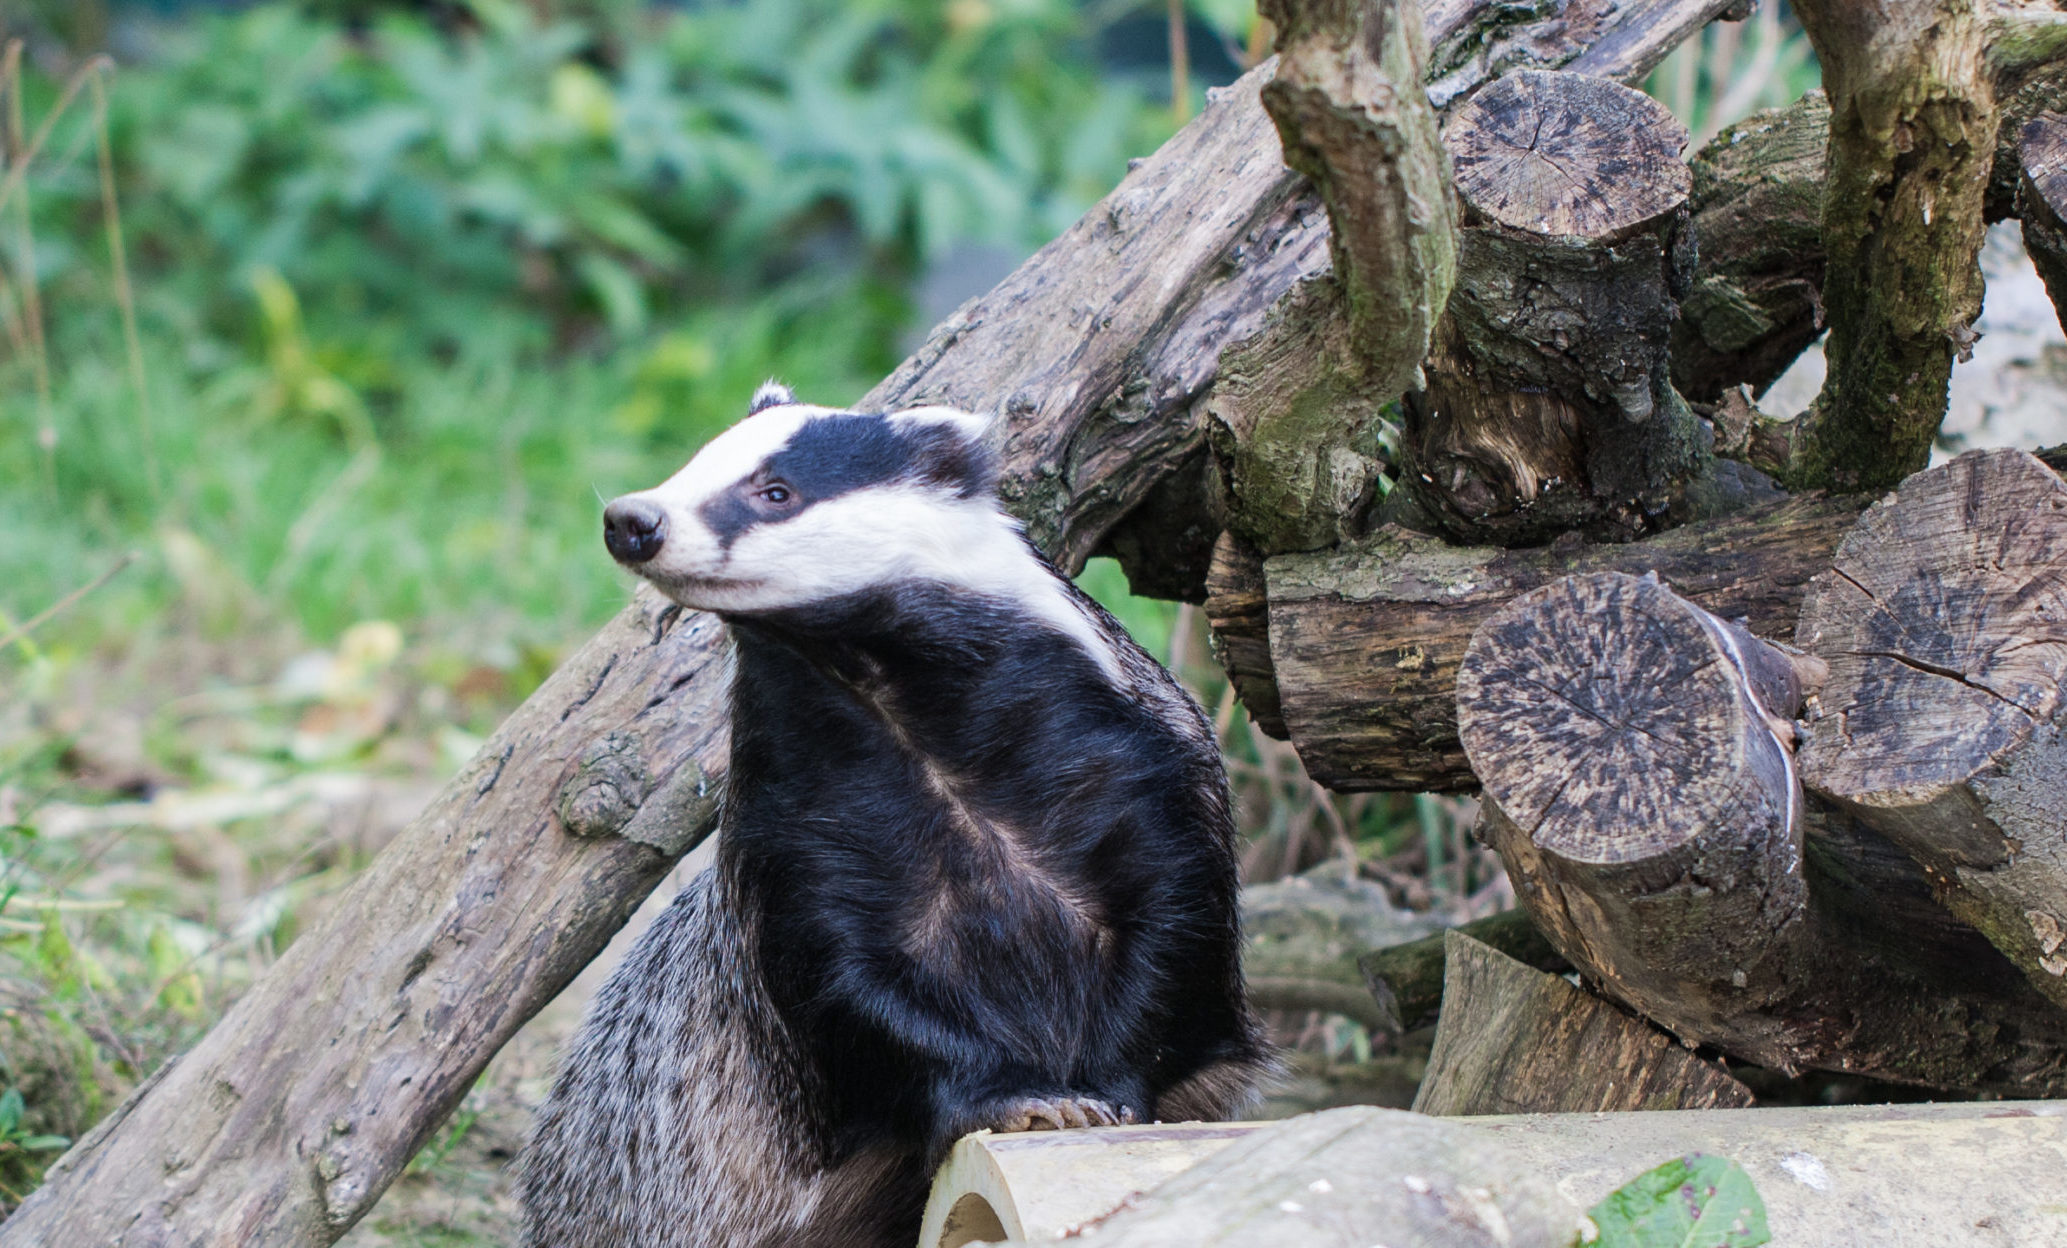 Badger by logs - Bovine TB